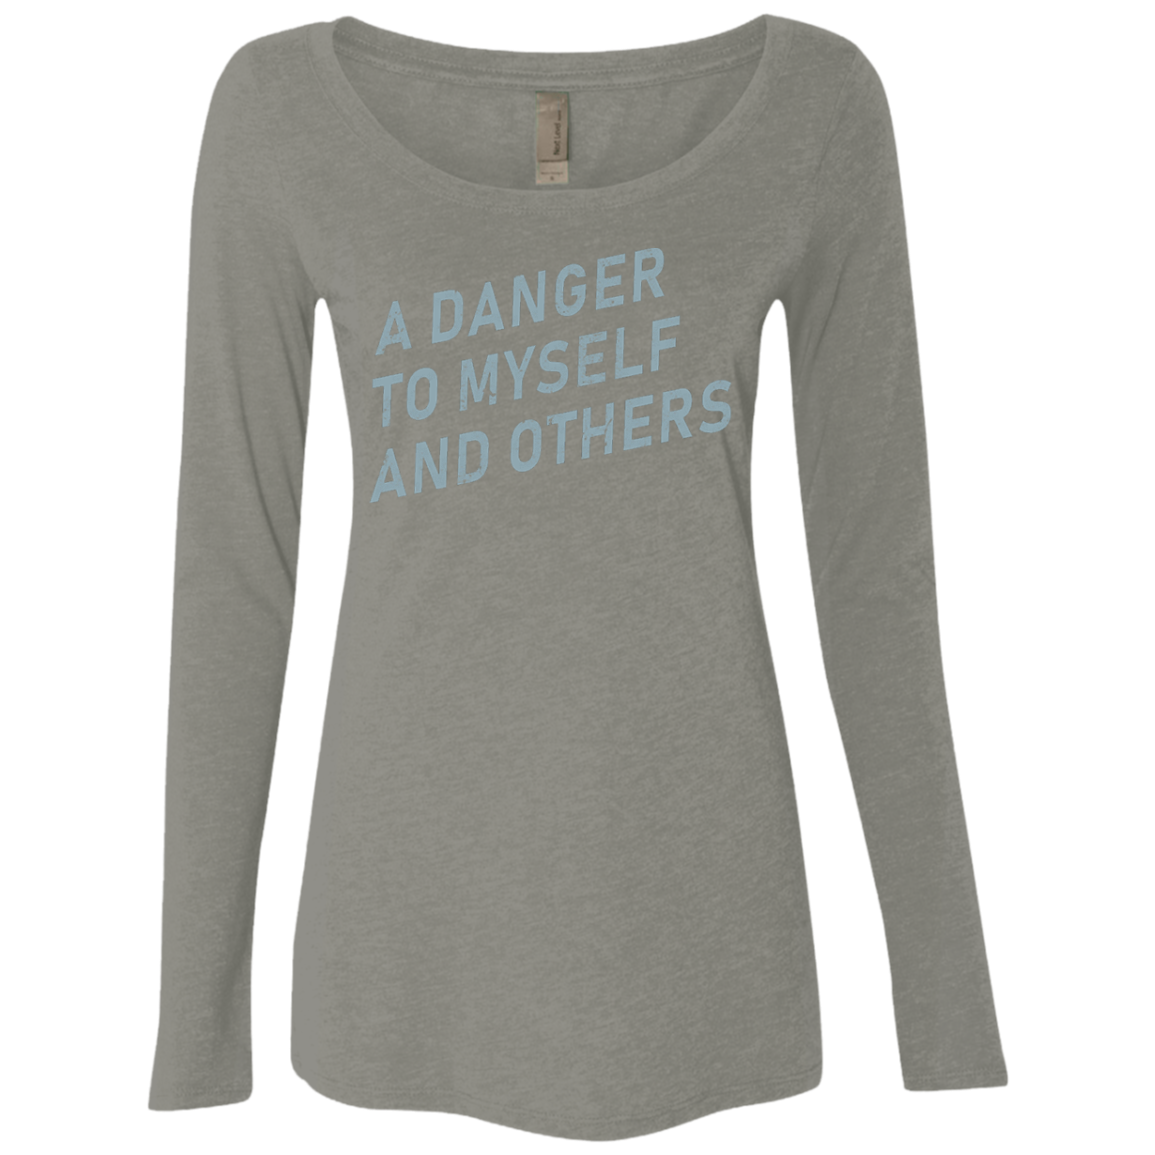 A Danger To Myself And Others Women's Long Sleeve Tee